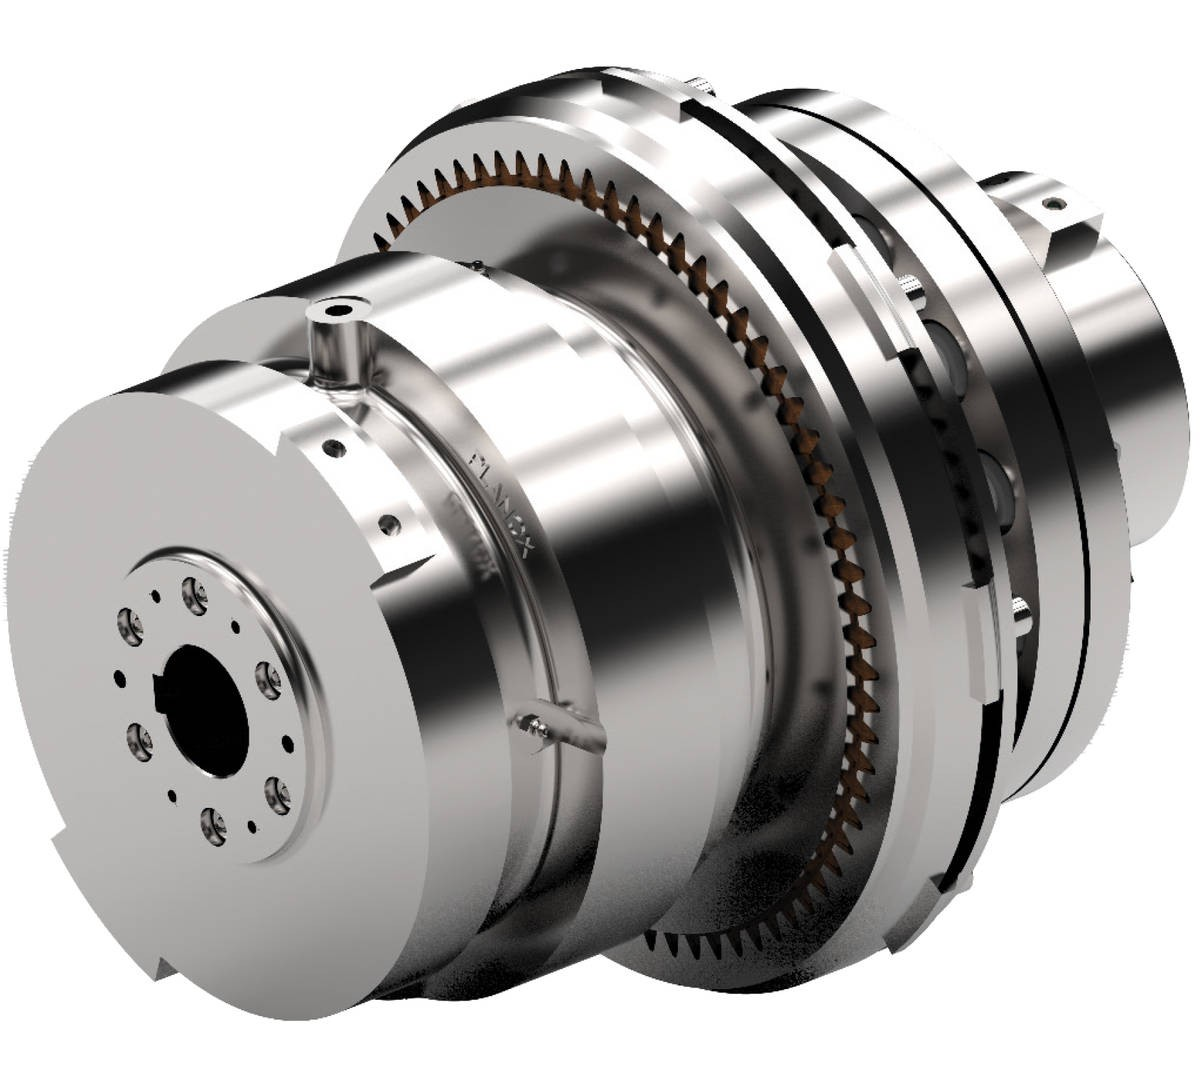 Desch Planox® clutch type PPRF with flexible Ox-coupling  Safety Clutches for Extruder Drives Image